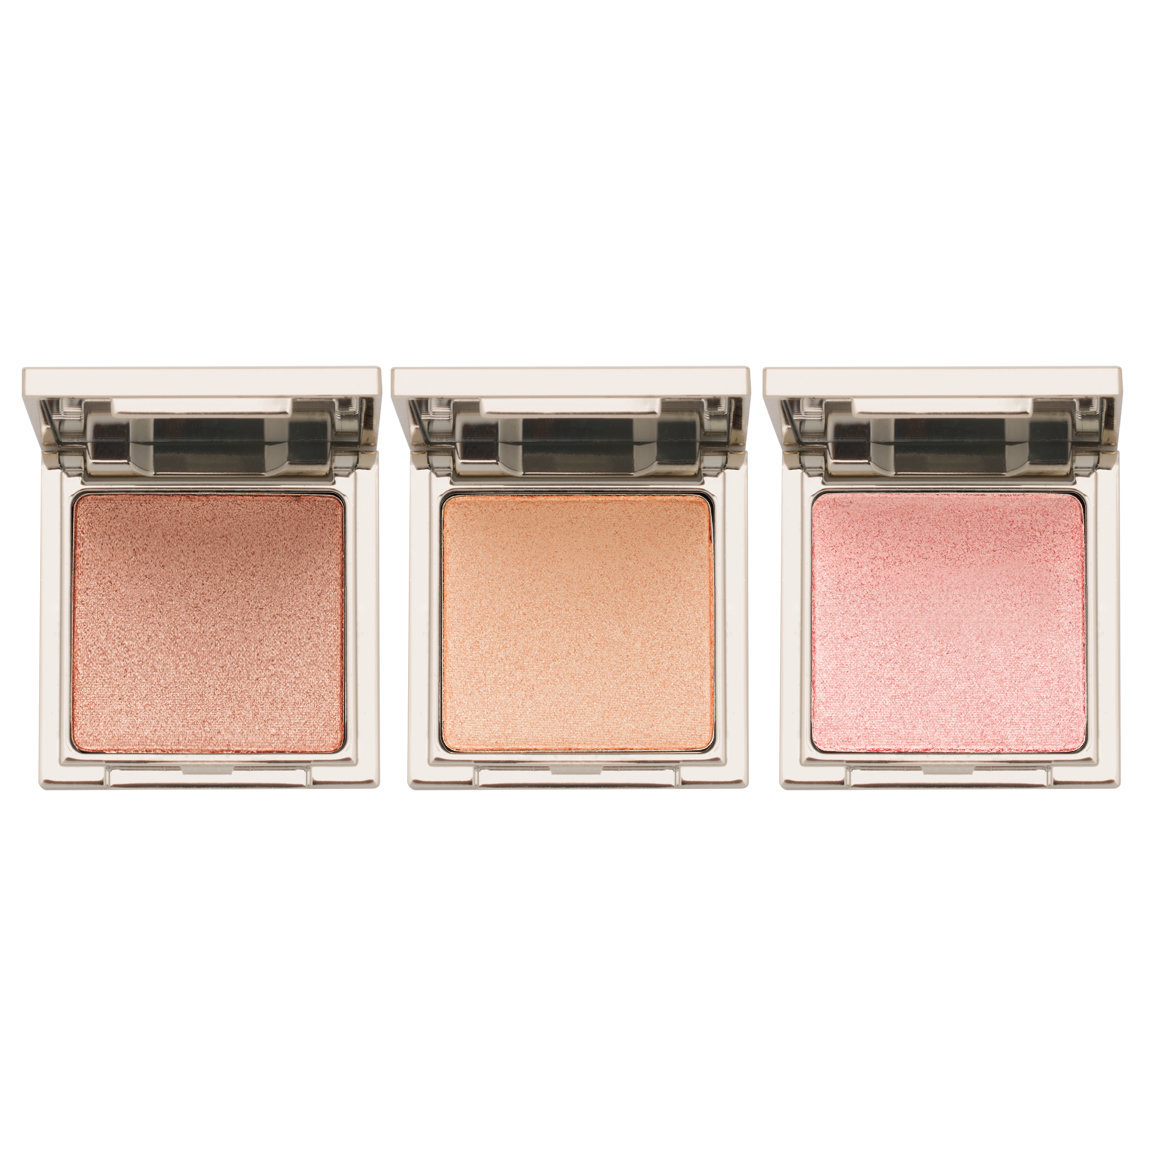 Jouer Cosmetics Powder Highlighter Trio Set Set 1 product smear.